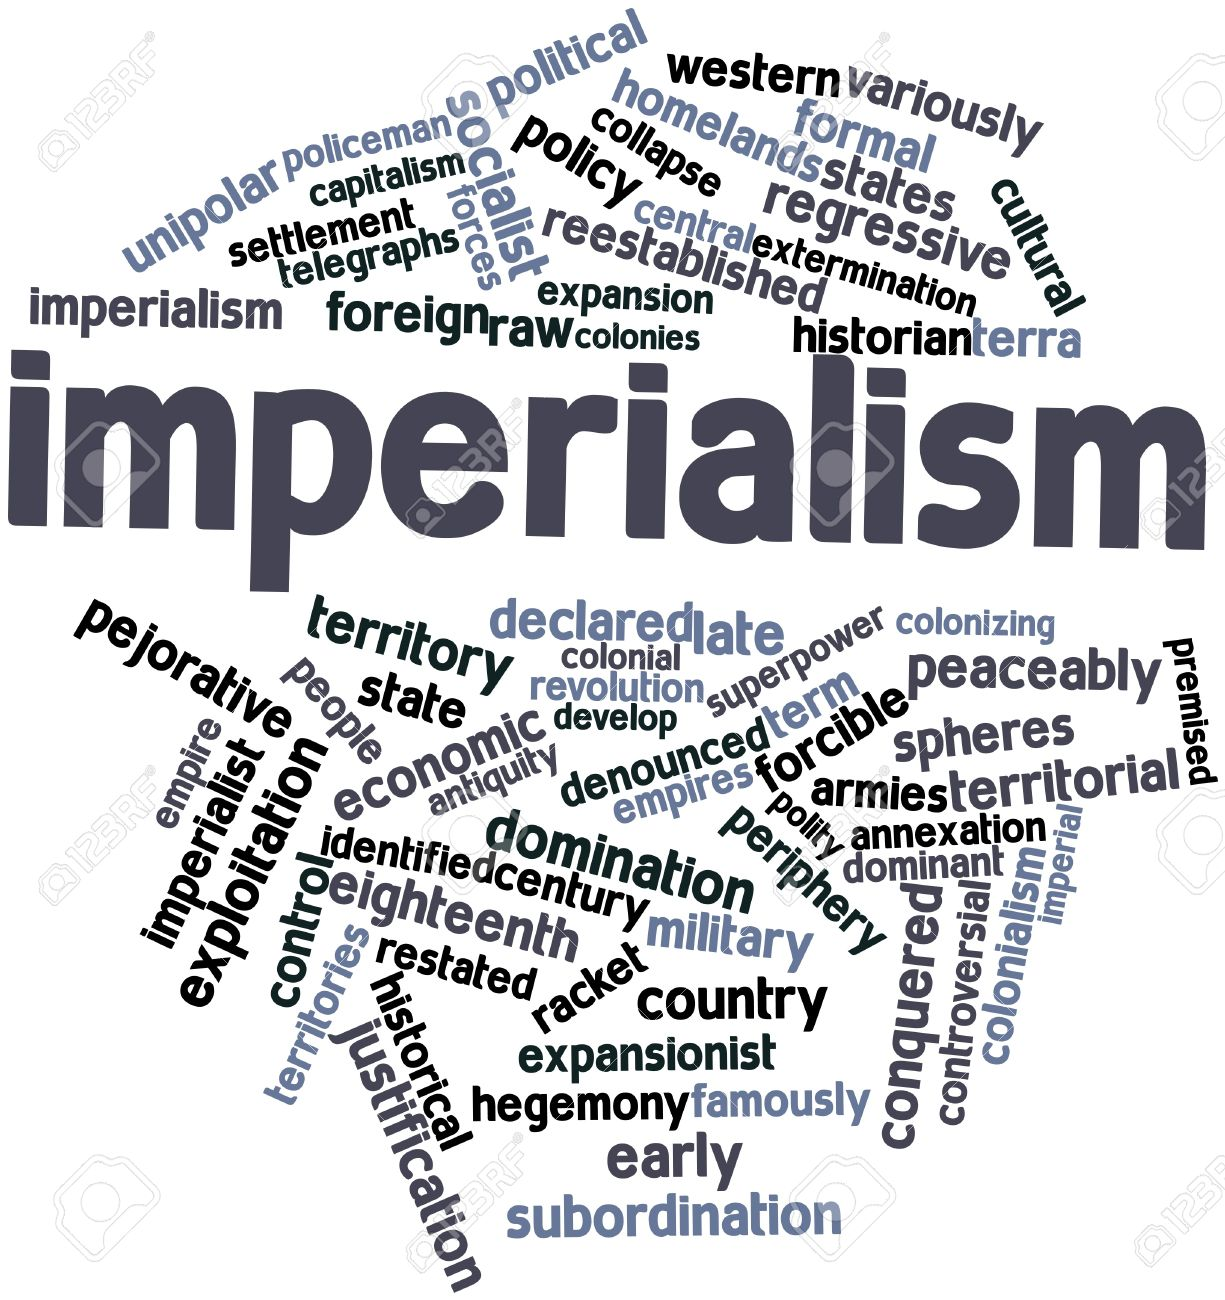 Imperialism Study Group News